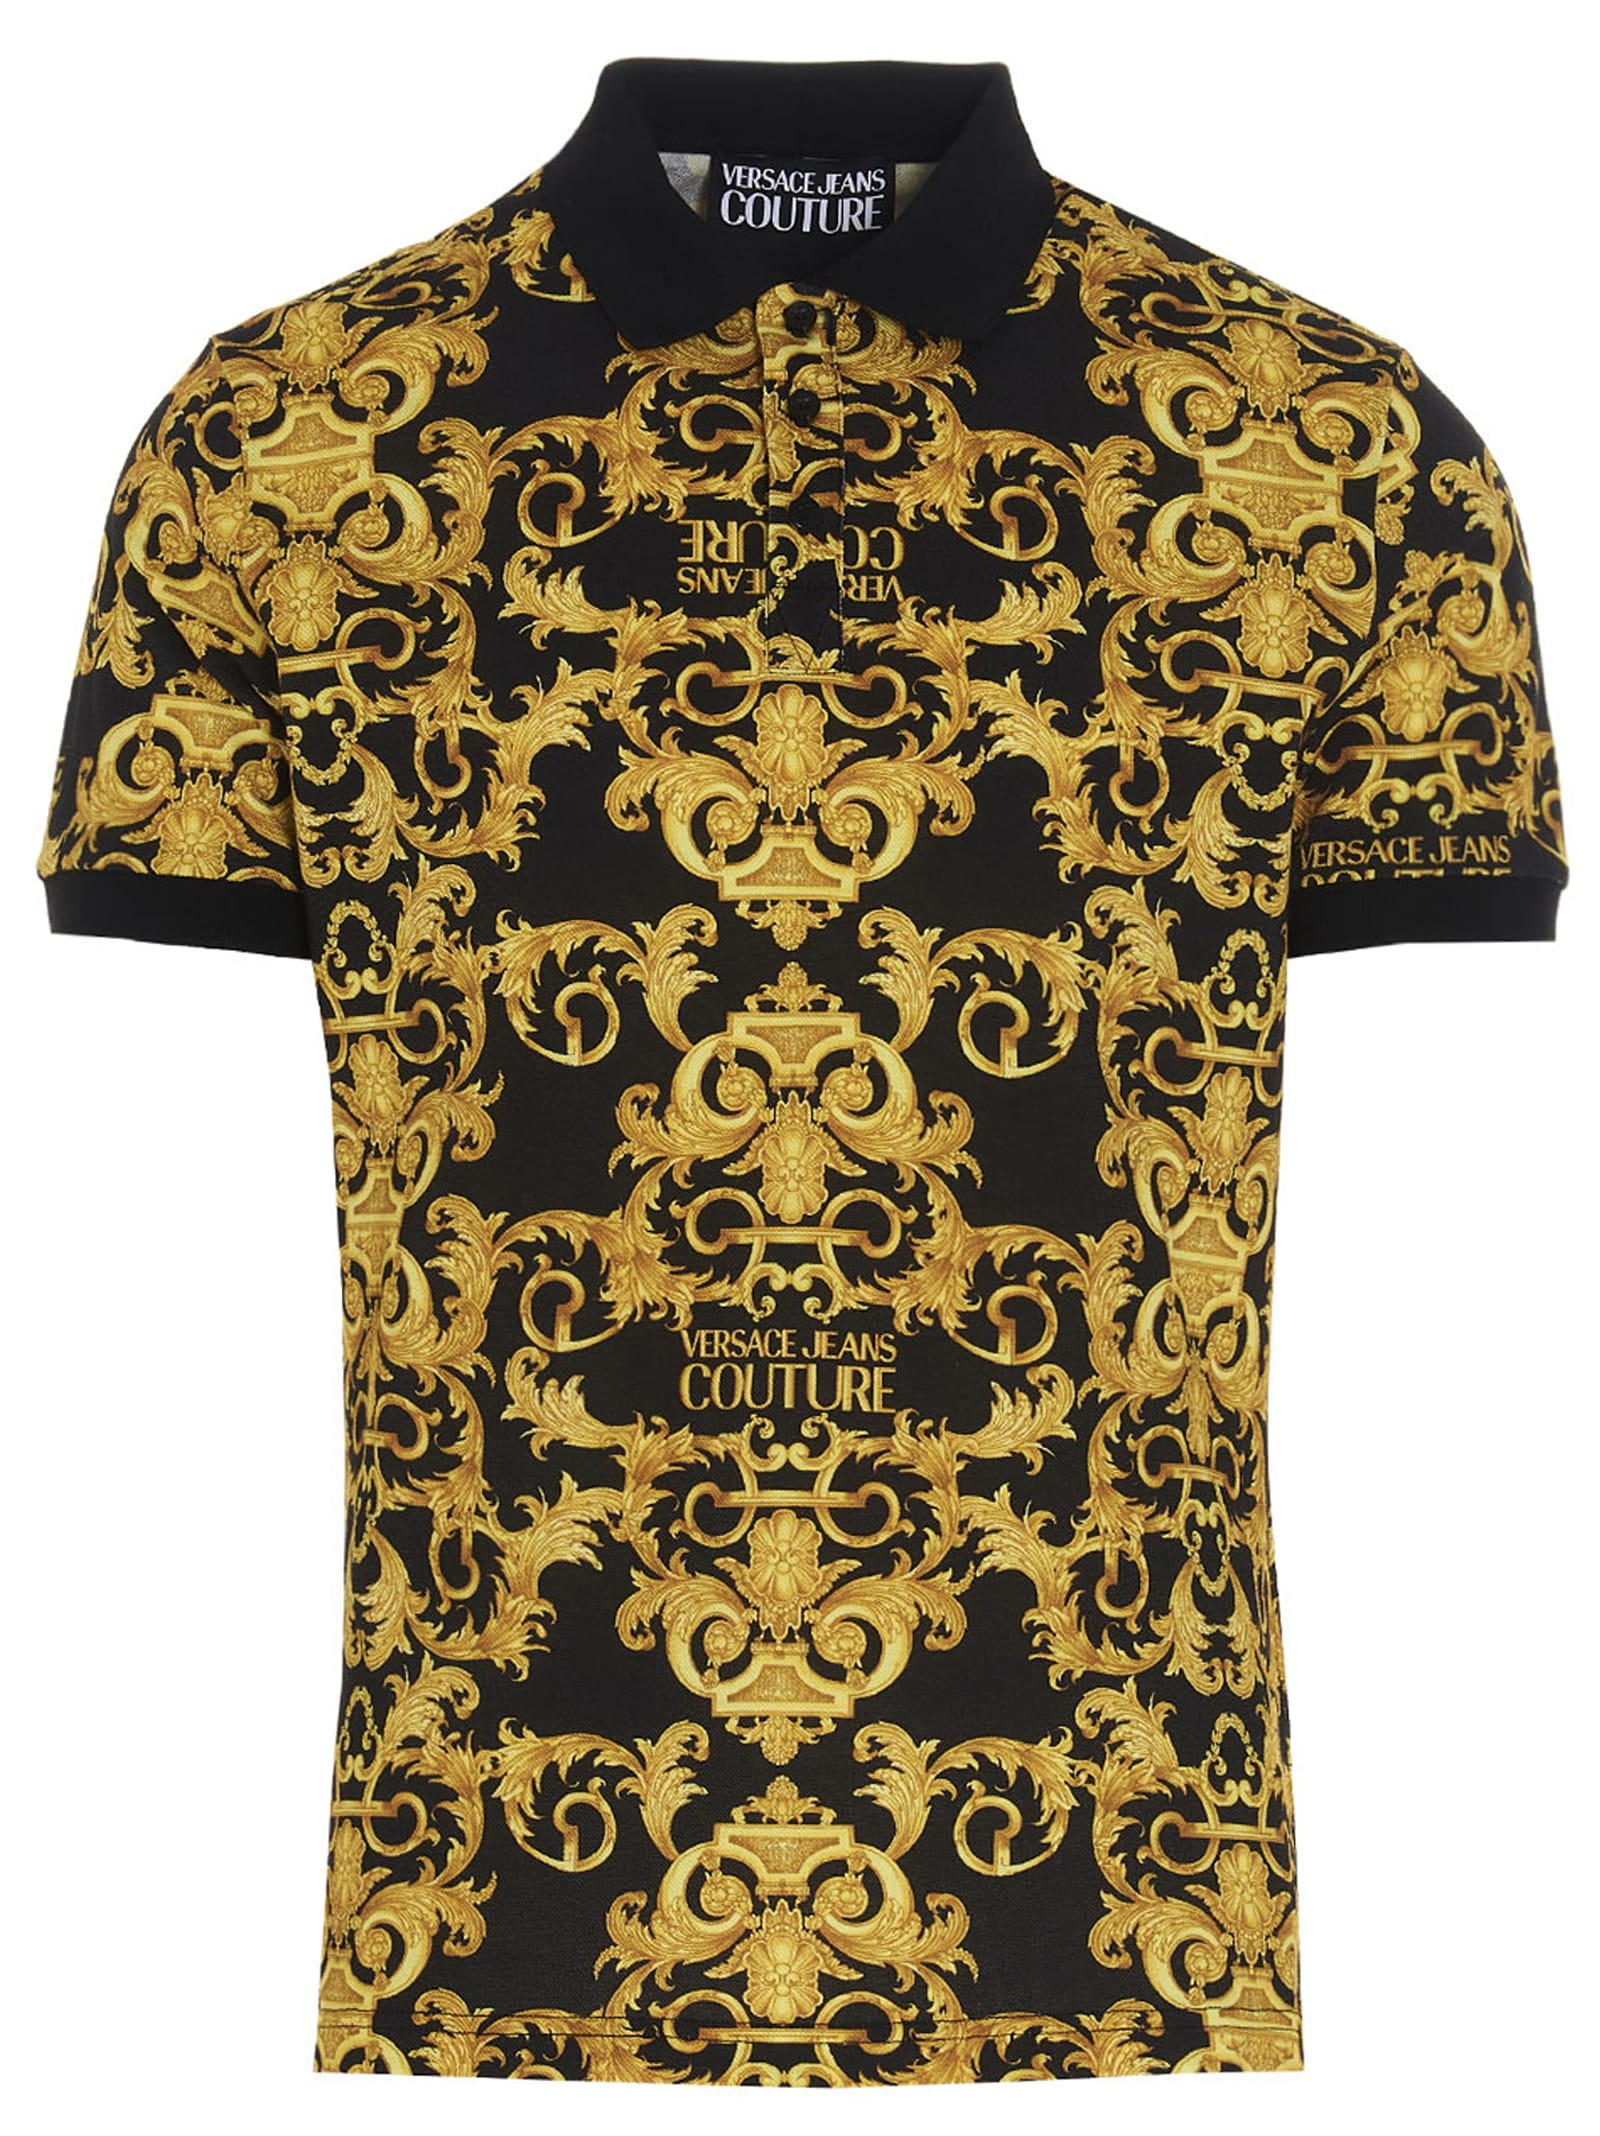 Versace Jeans Couture barocco Polo